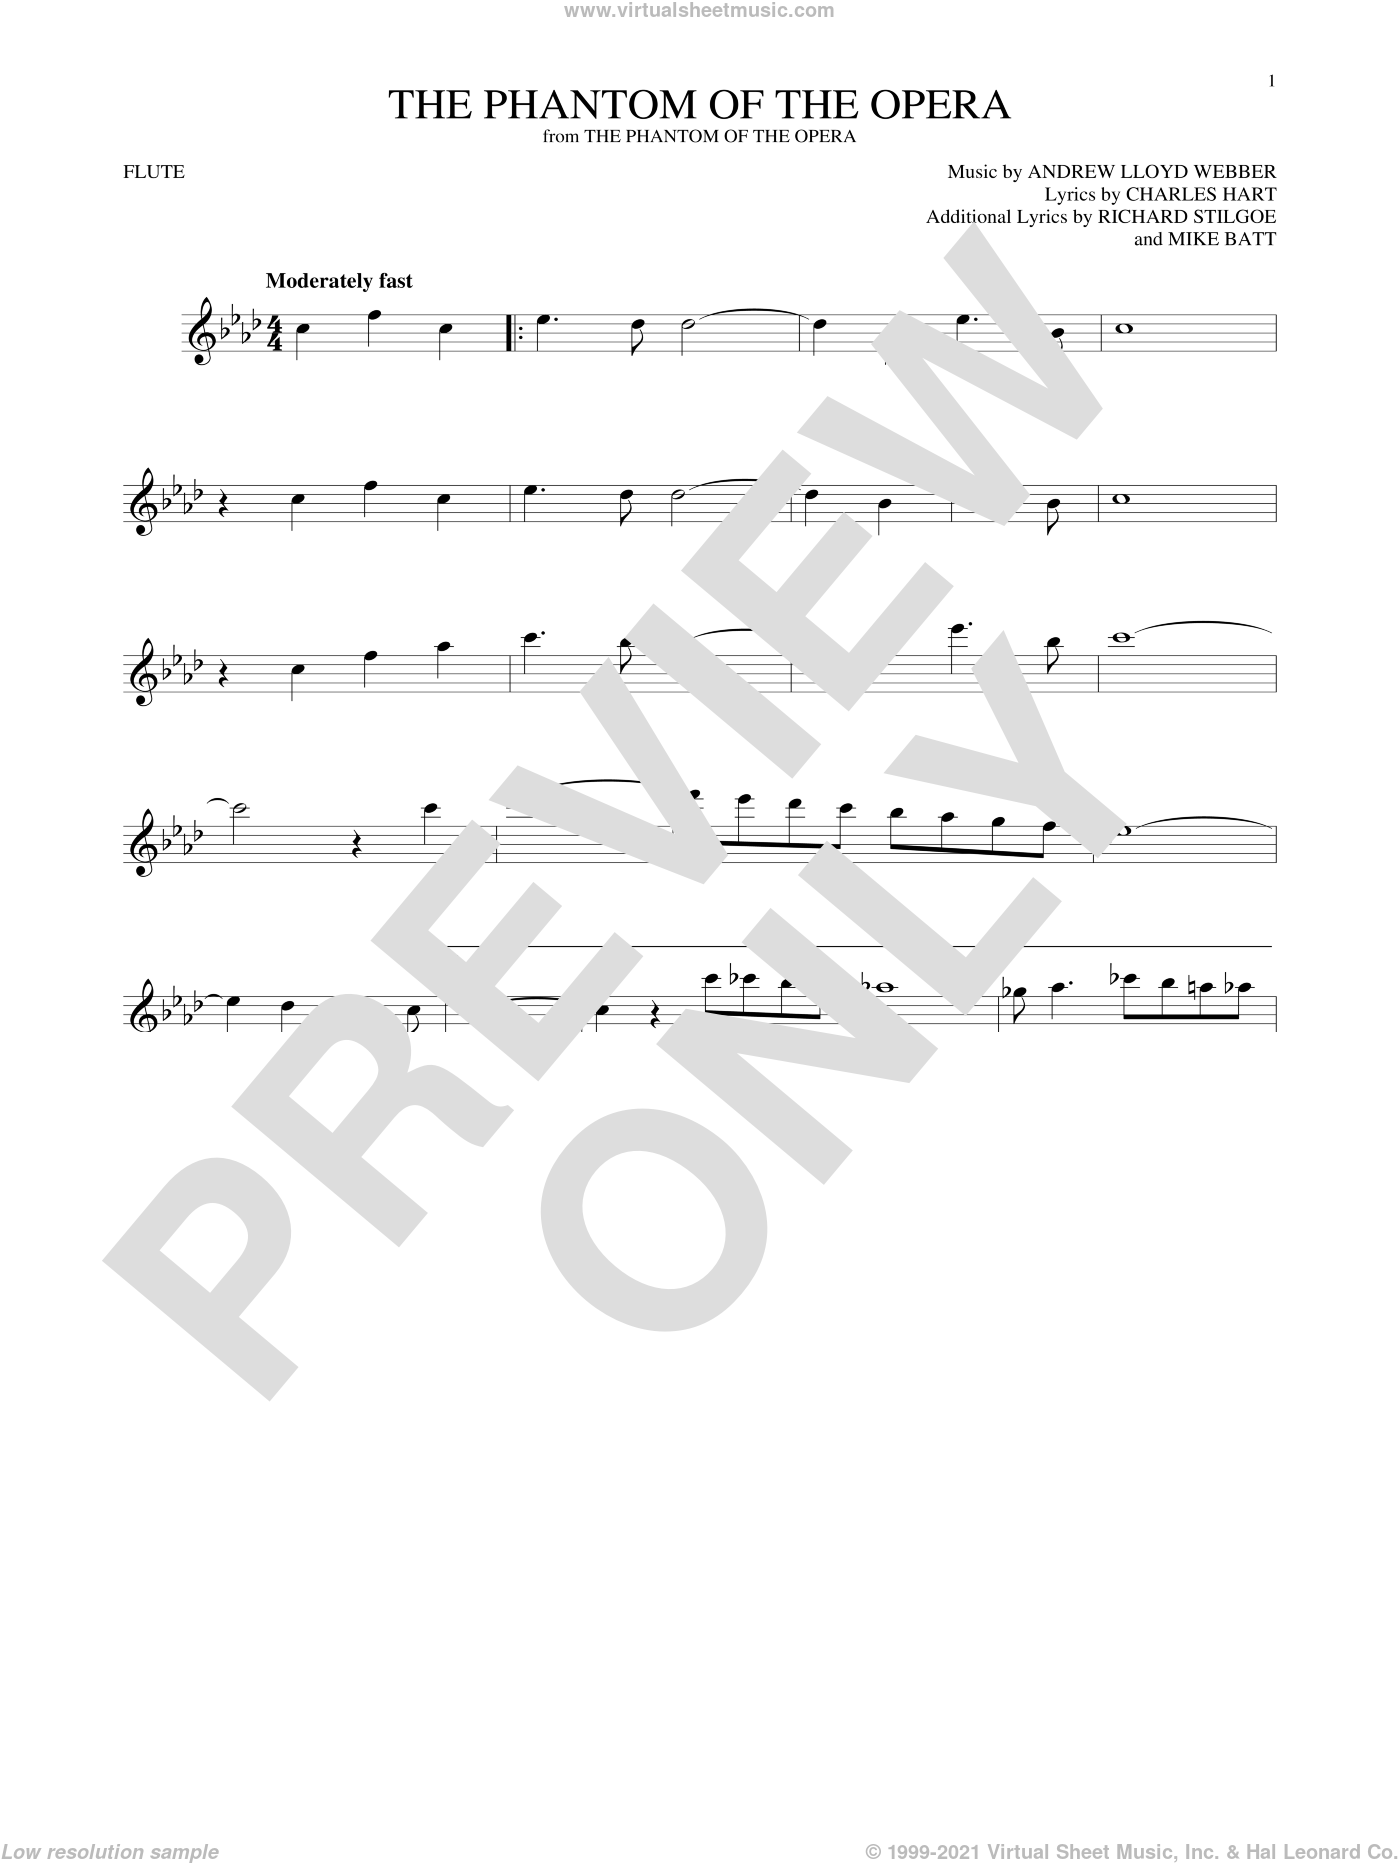 The Phantom Of The Opera sheet music for flute solo by Andrew Lloyd Webber, Charles Hart, Mike Batt and Richard Stilgoe, intermediate skill level